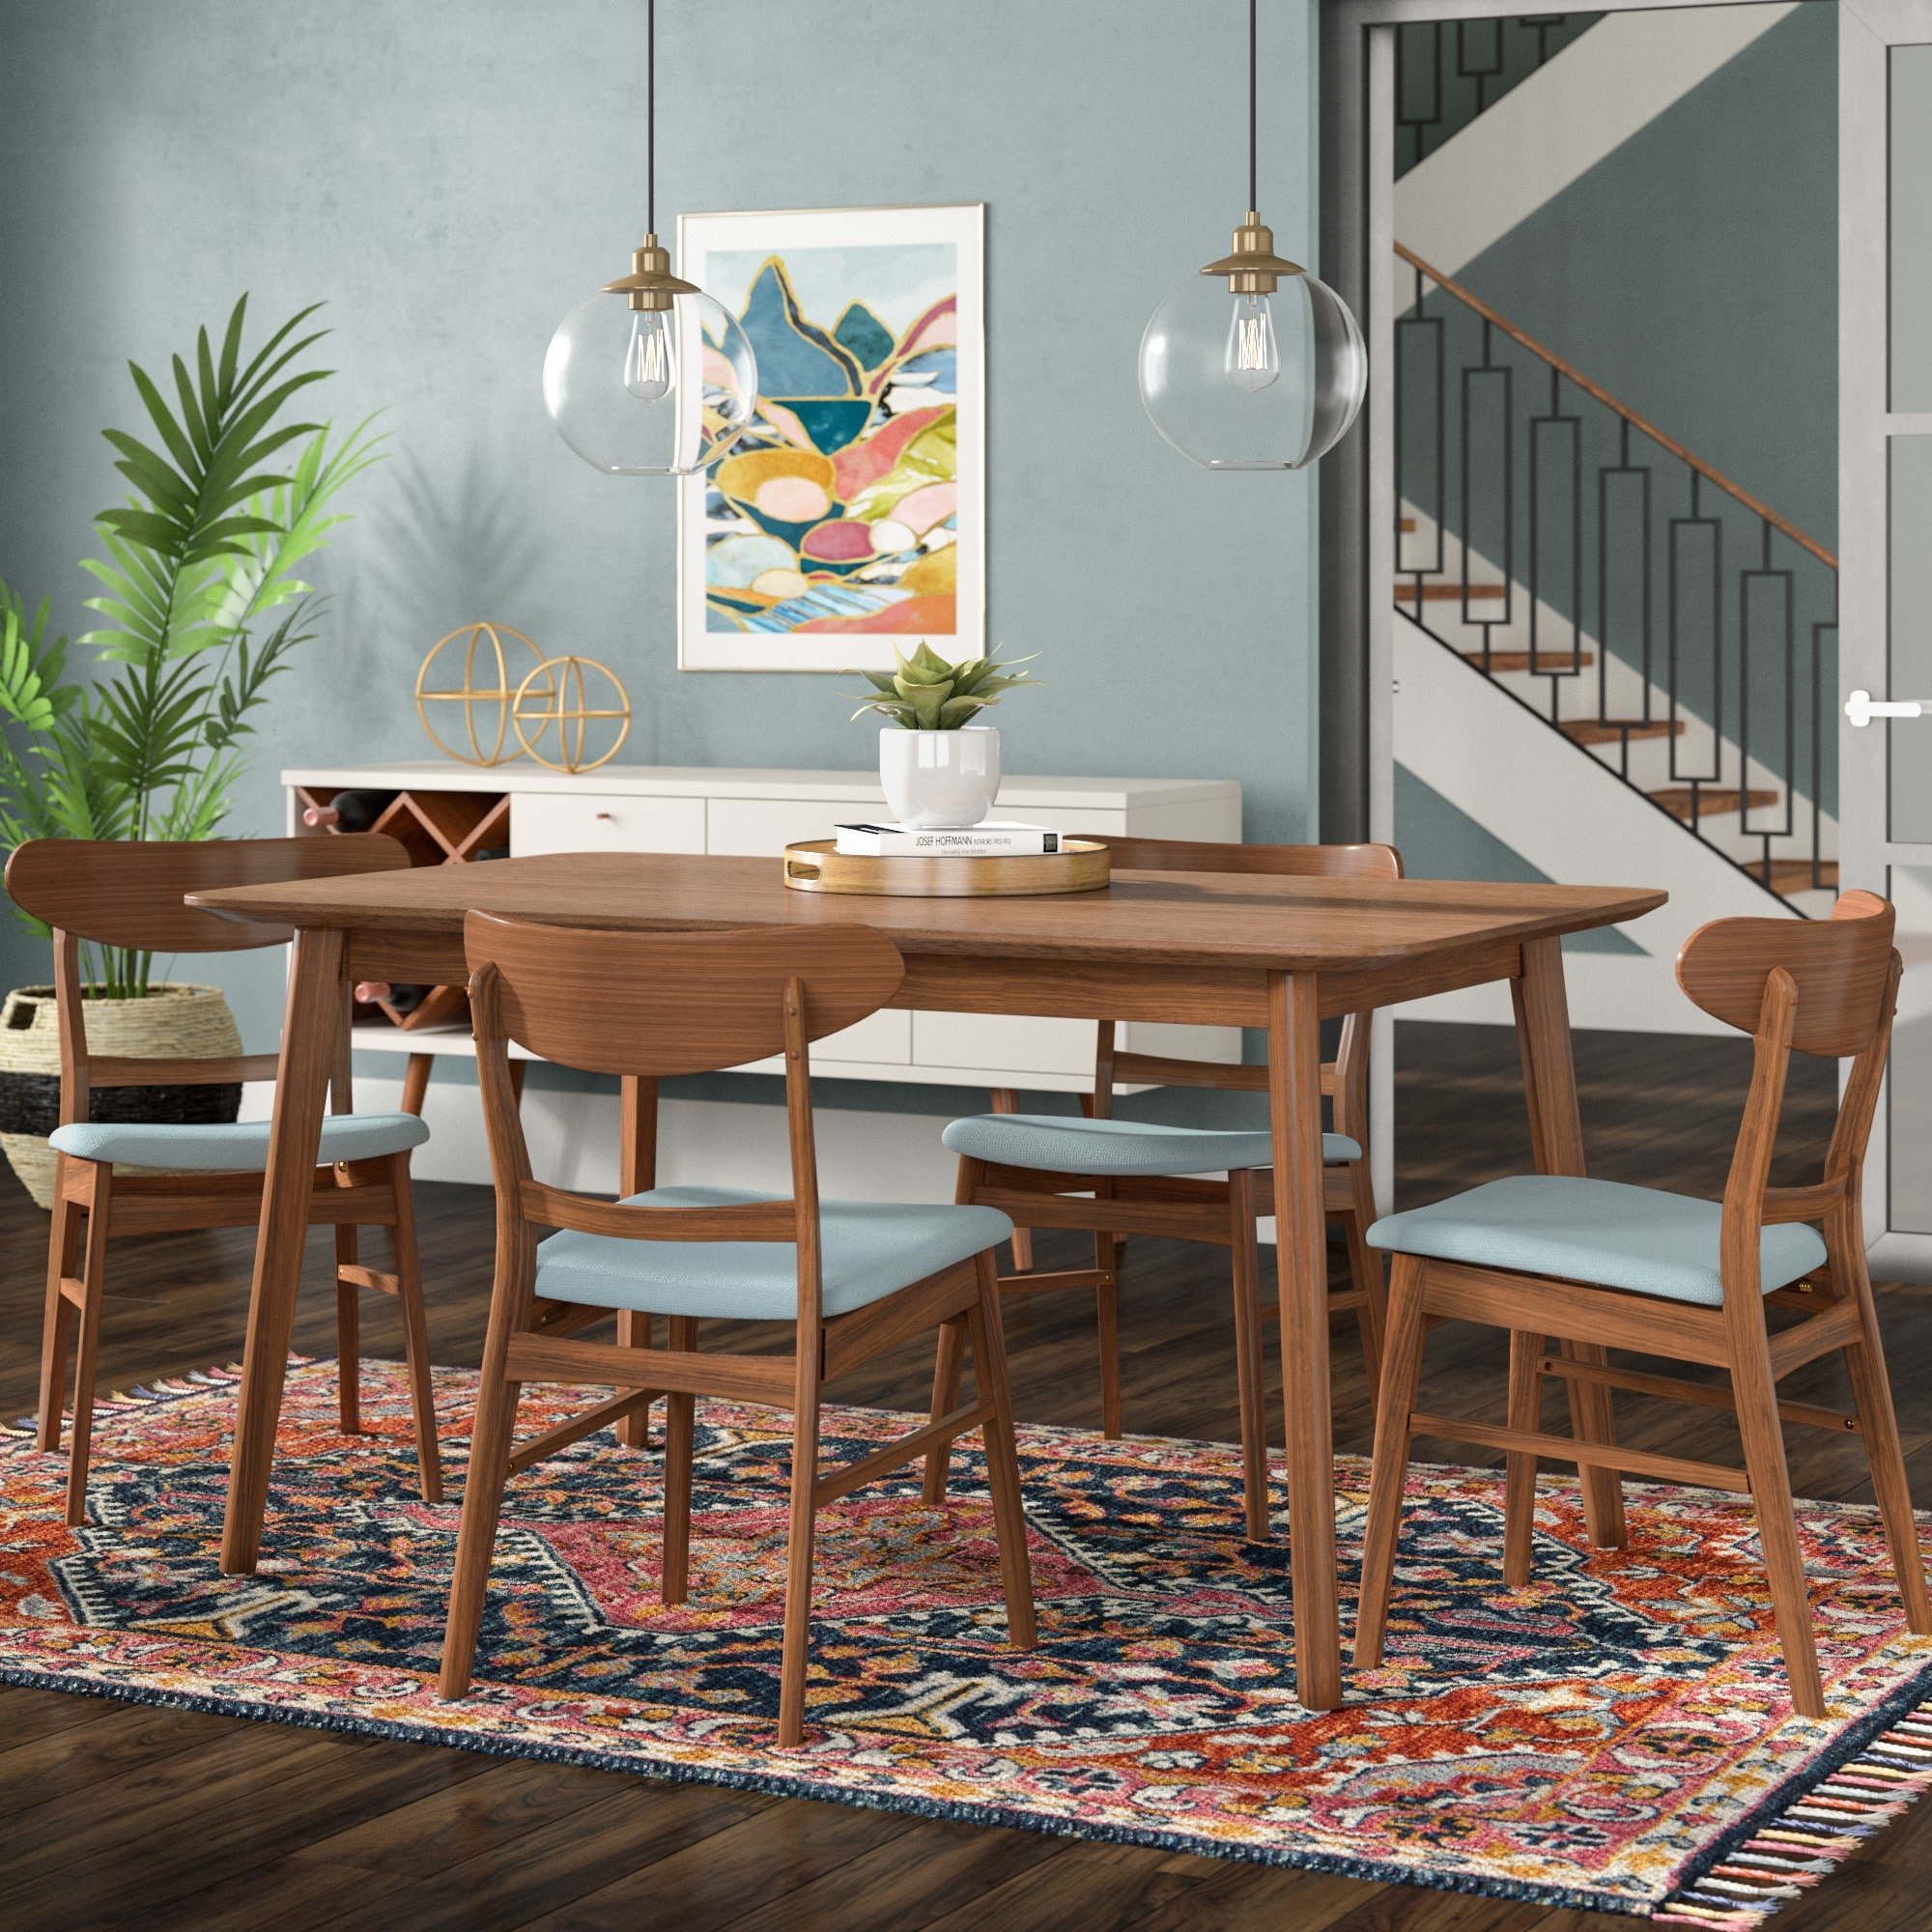 Langley Street Yolanda 5 Piece Dining Set & Reviews | Wayfair With Most Current Laurent 5 Piece Round Dining Sets With Wood Chairs (Photo 11 of 20)